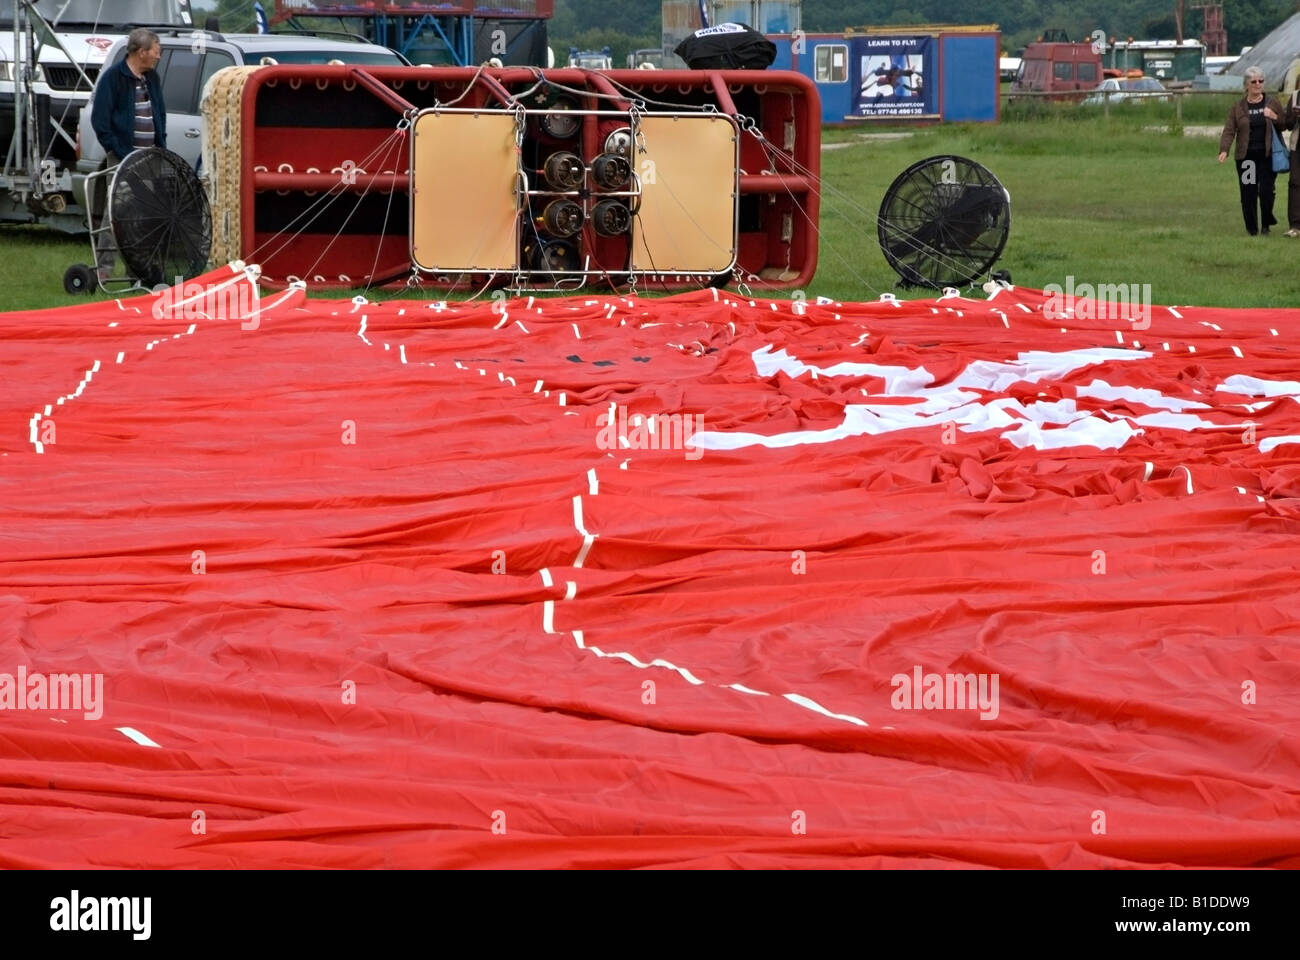 Preparations to inflate a hot air balloon at Headcorn (Lashenden) aerodrome - Stock Image